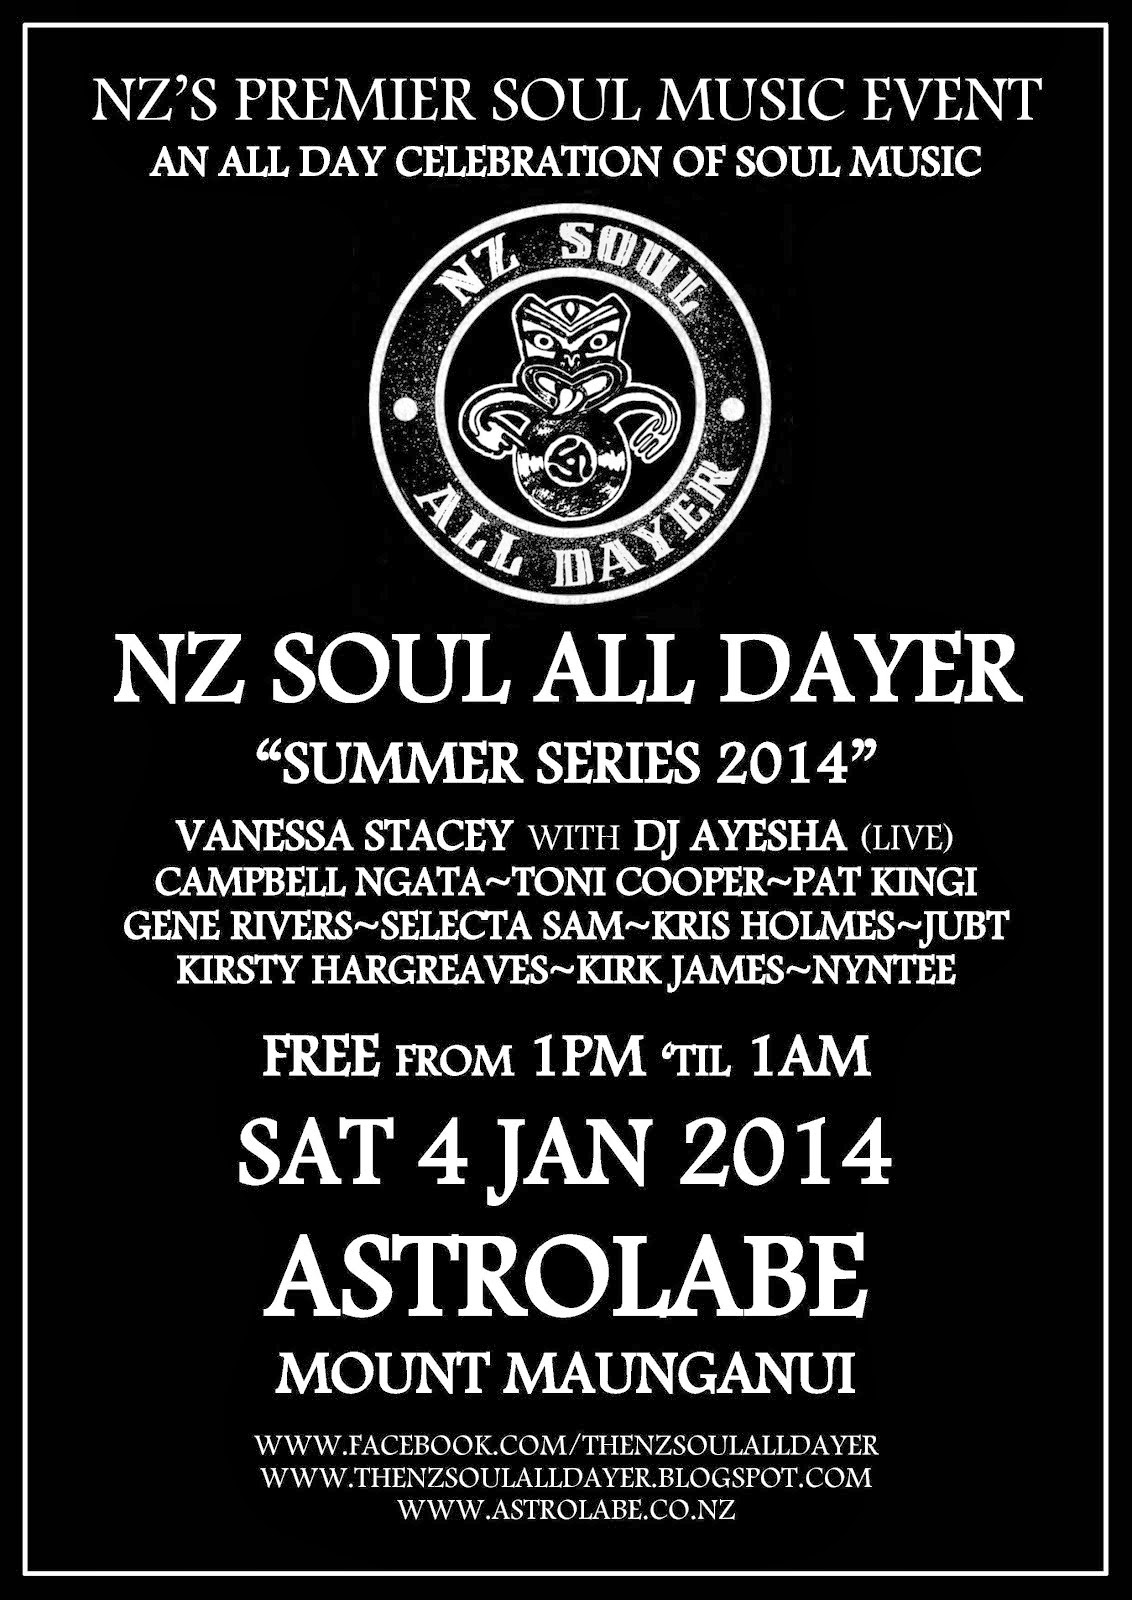 NZ Soul All Dayer Mt Maunganui 2014